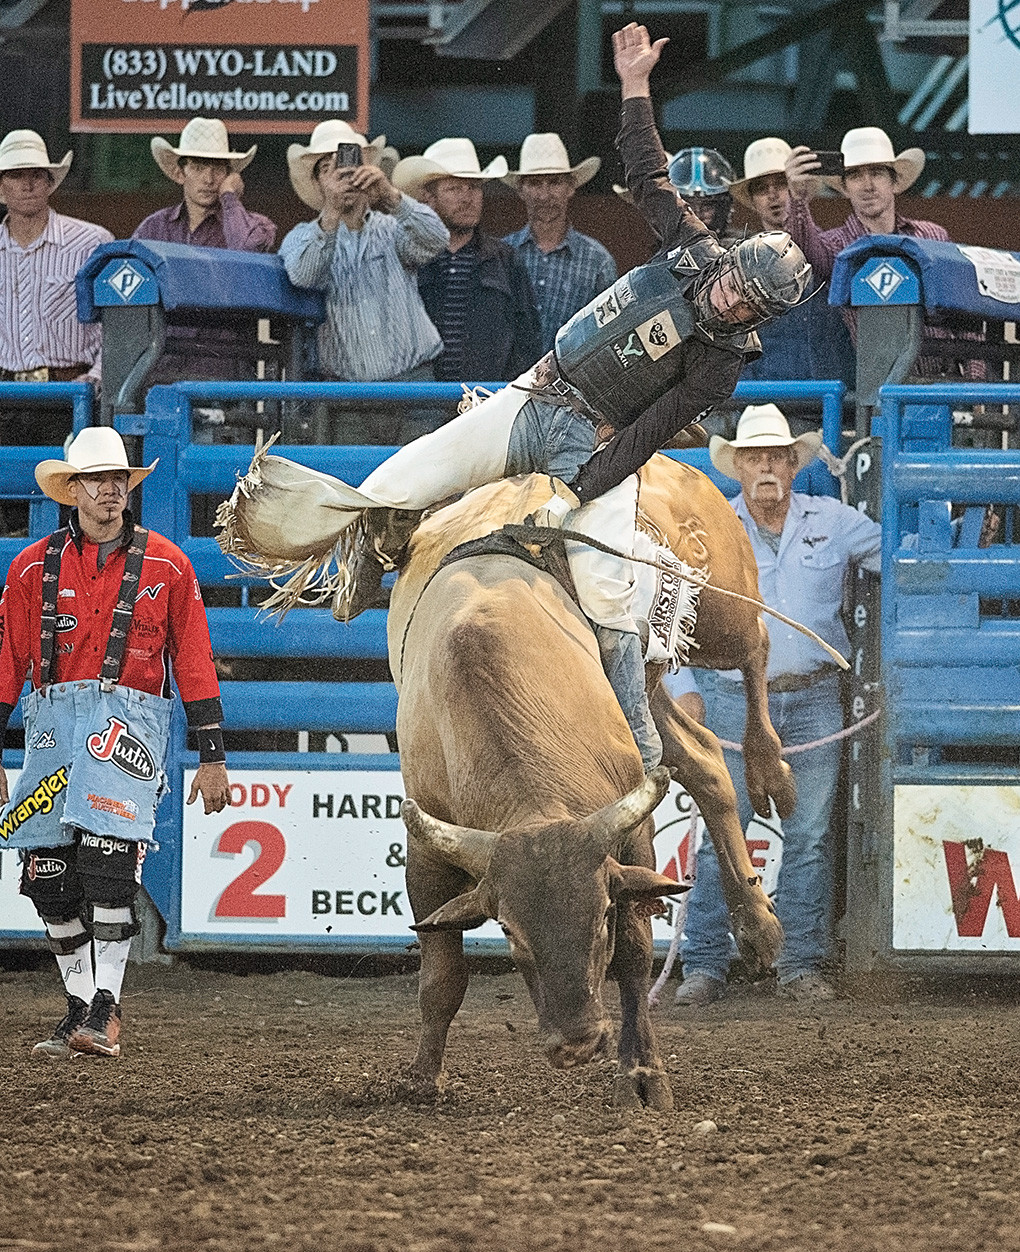 Boudreaux Campbell pulls himself back to center to finish the 8 seconds with a 90-point ride and earn the top spot for the night. Xtreme Bulls kicks off five days of PRCA rodeo action in Cody, going through Wednesday. Campbell is currently 10th in PRCA's Xtreme Bulls standings.